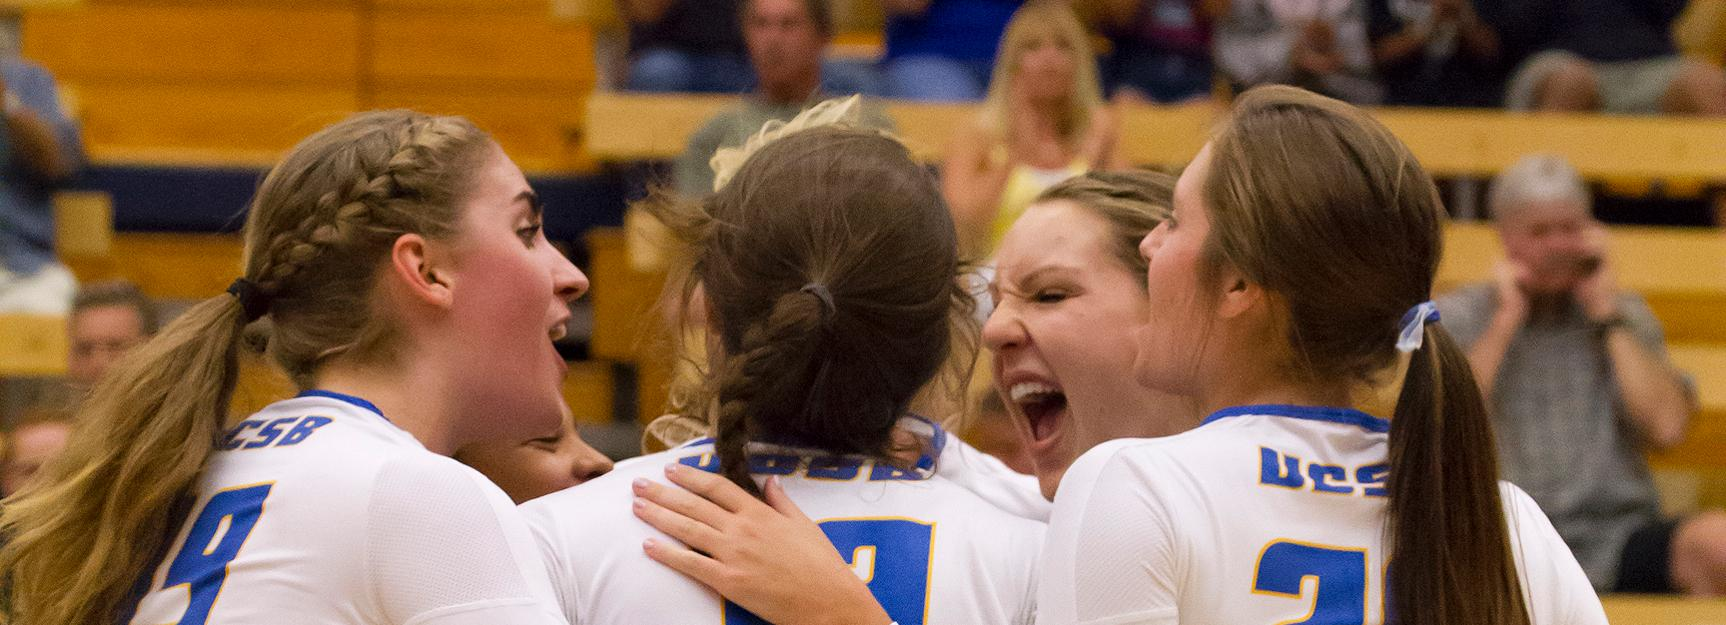 Gauchos Cruise to 3-0 Win Over Cal State Fullerton, Inch Closer to Conference Lead